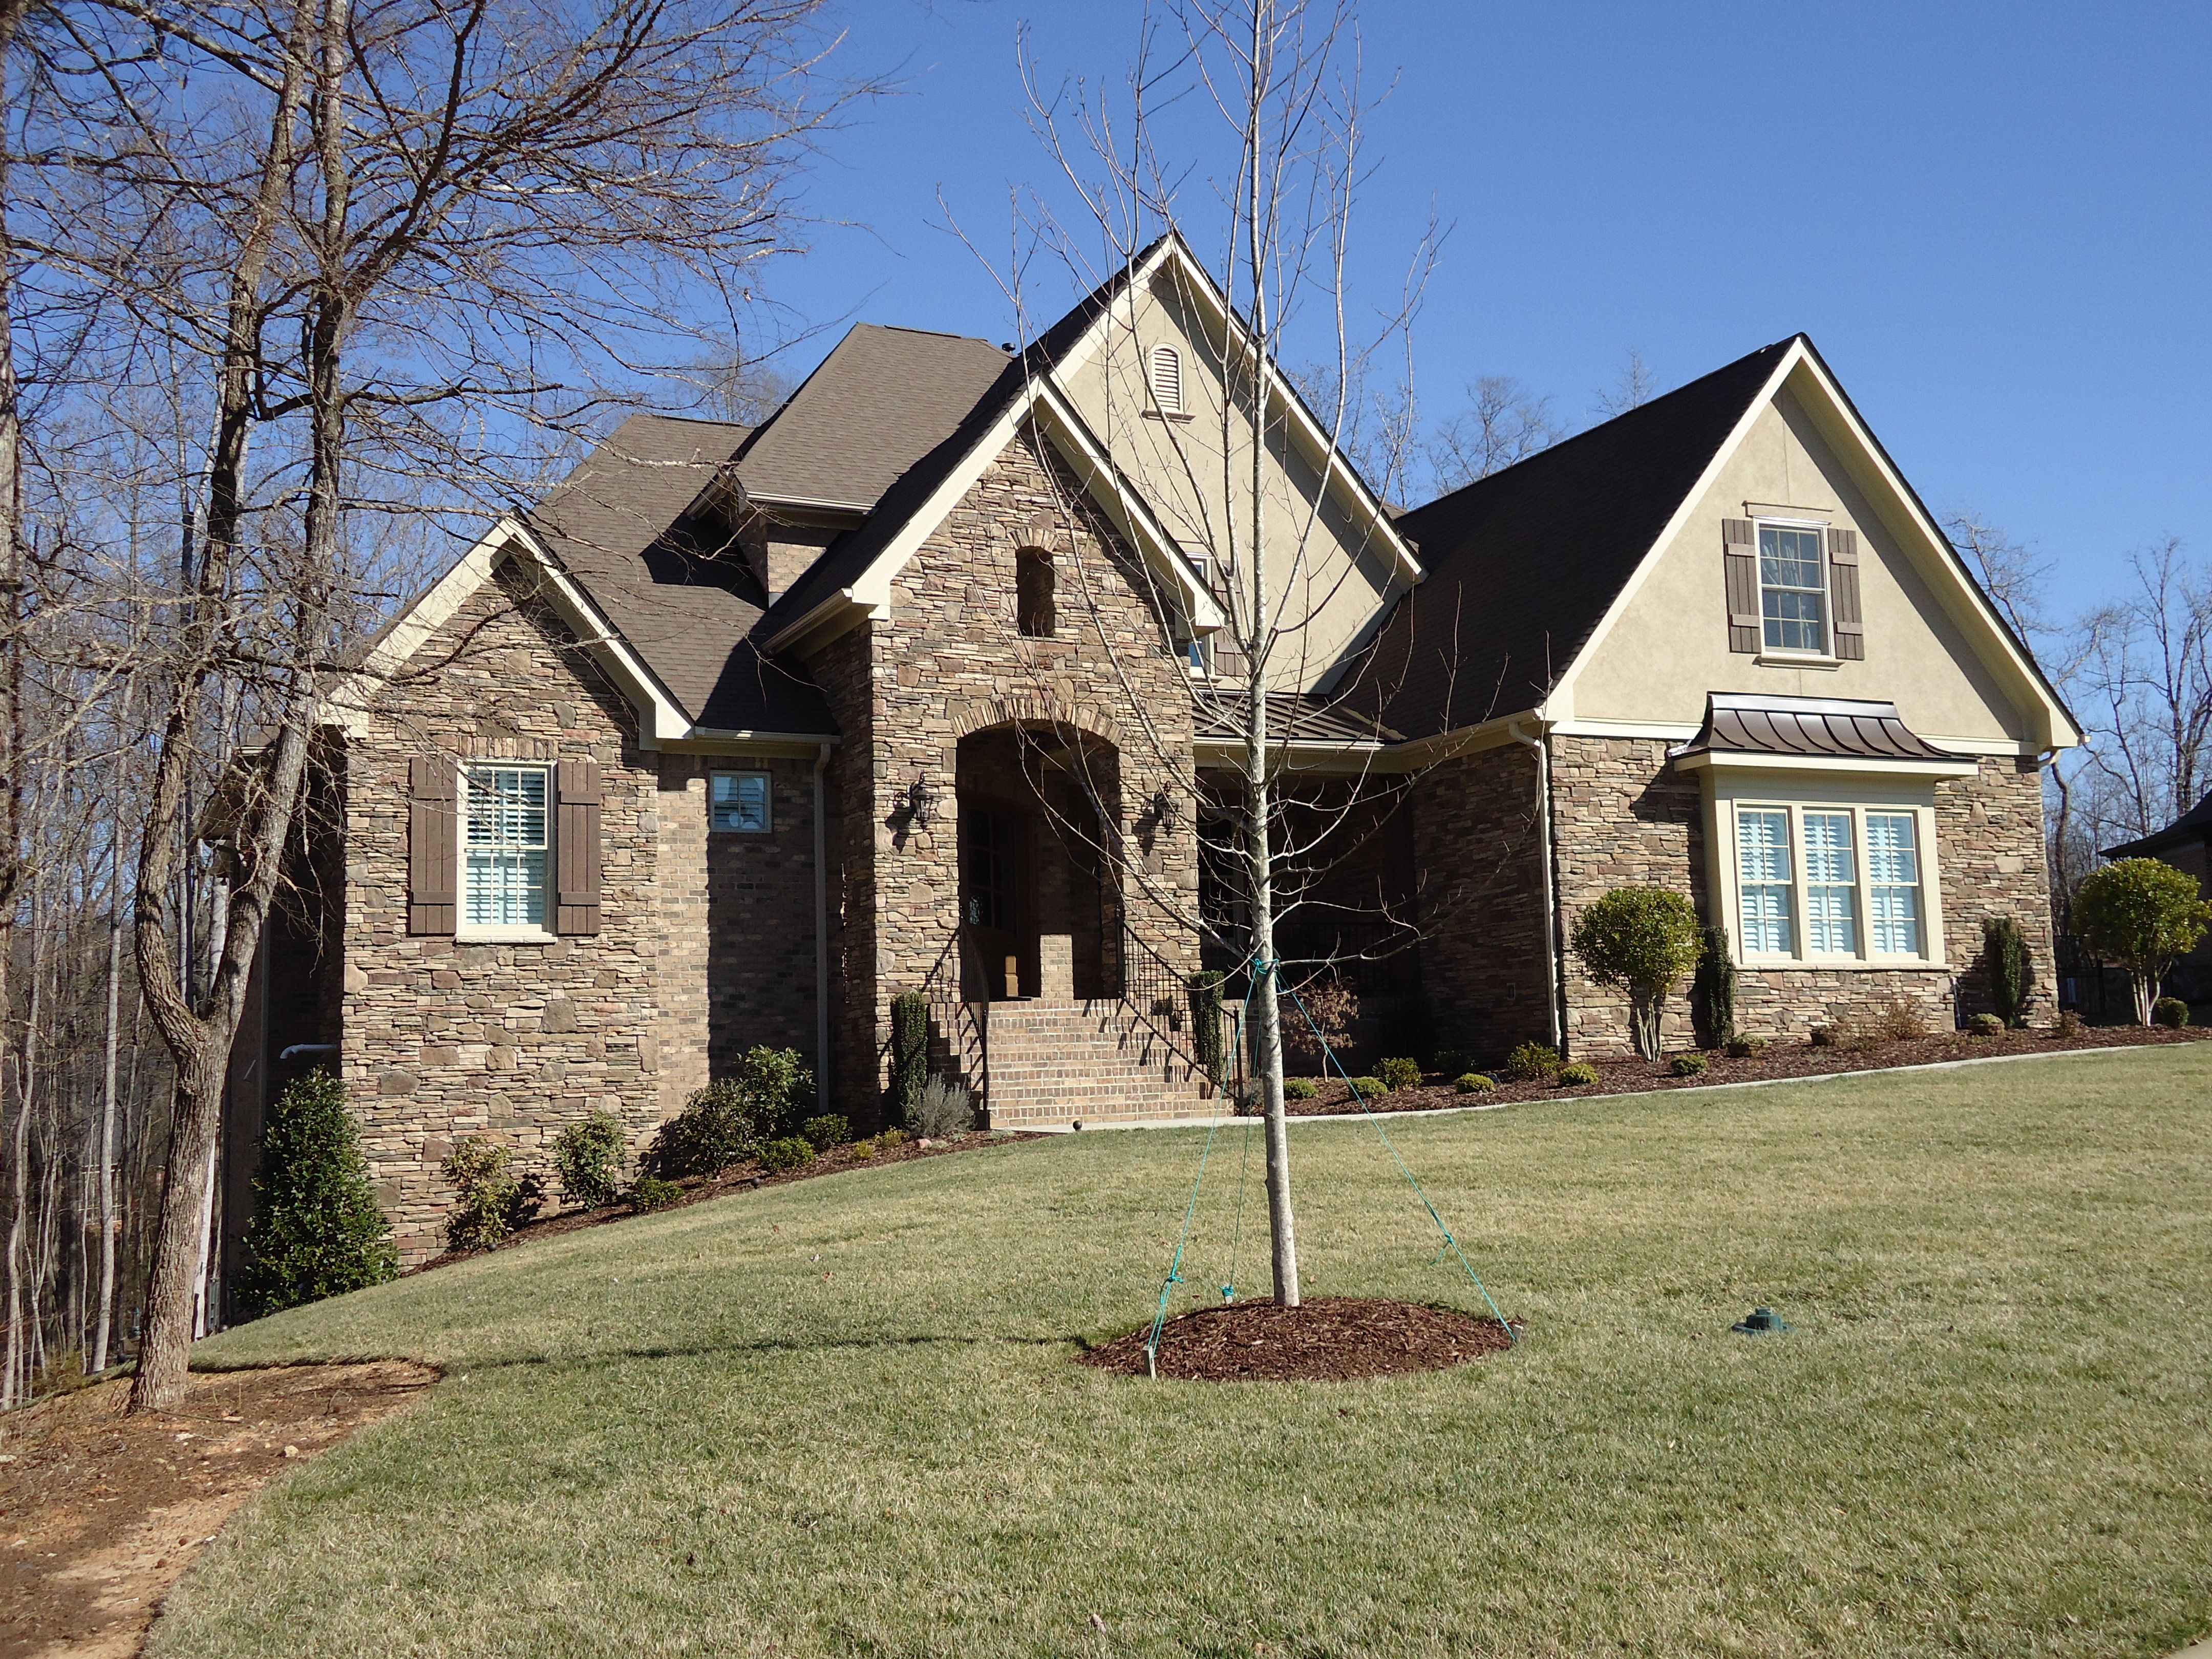 Arh plan the asheville 1131f exterior 17 roof owens - Chestnut brown exterior gloss paint ...